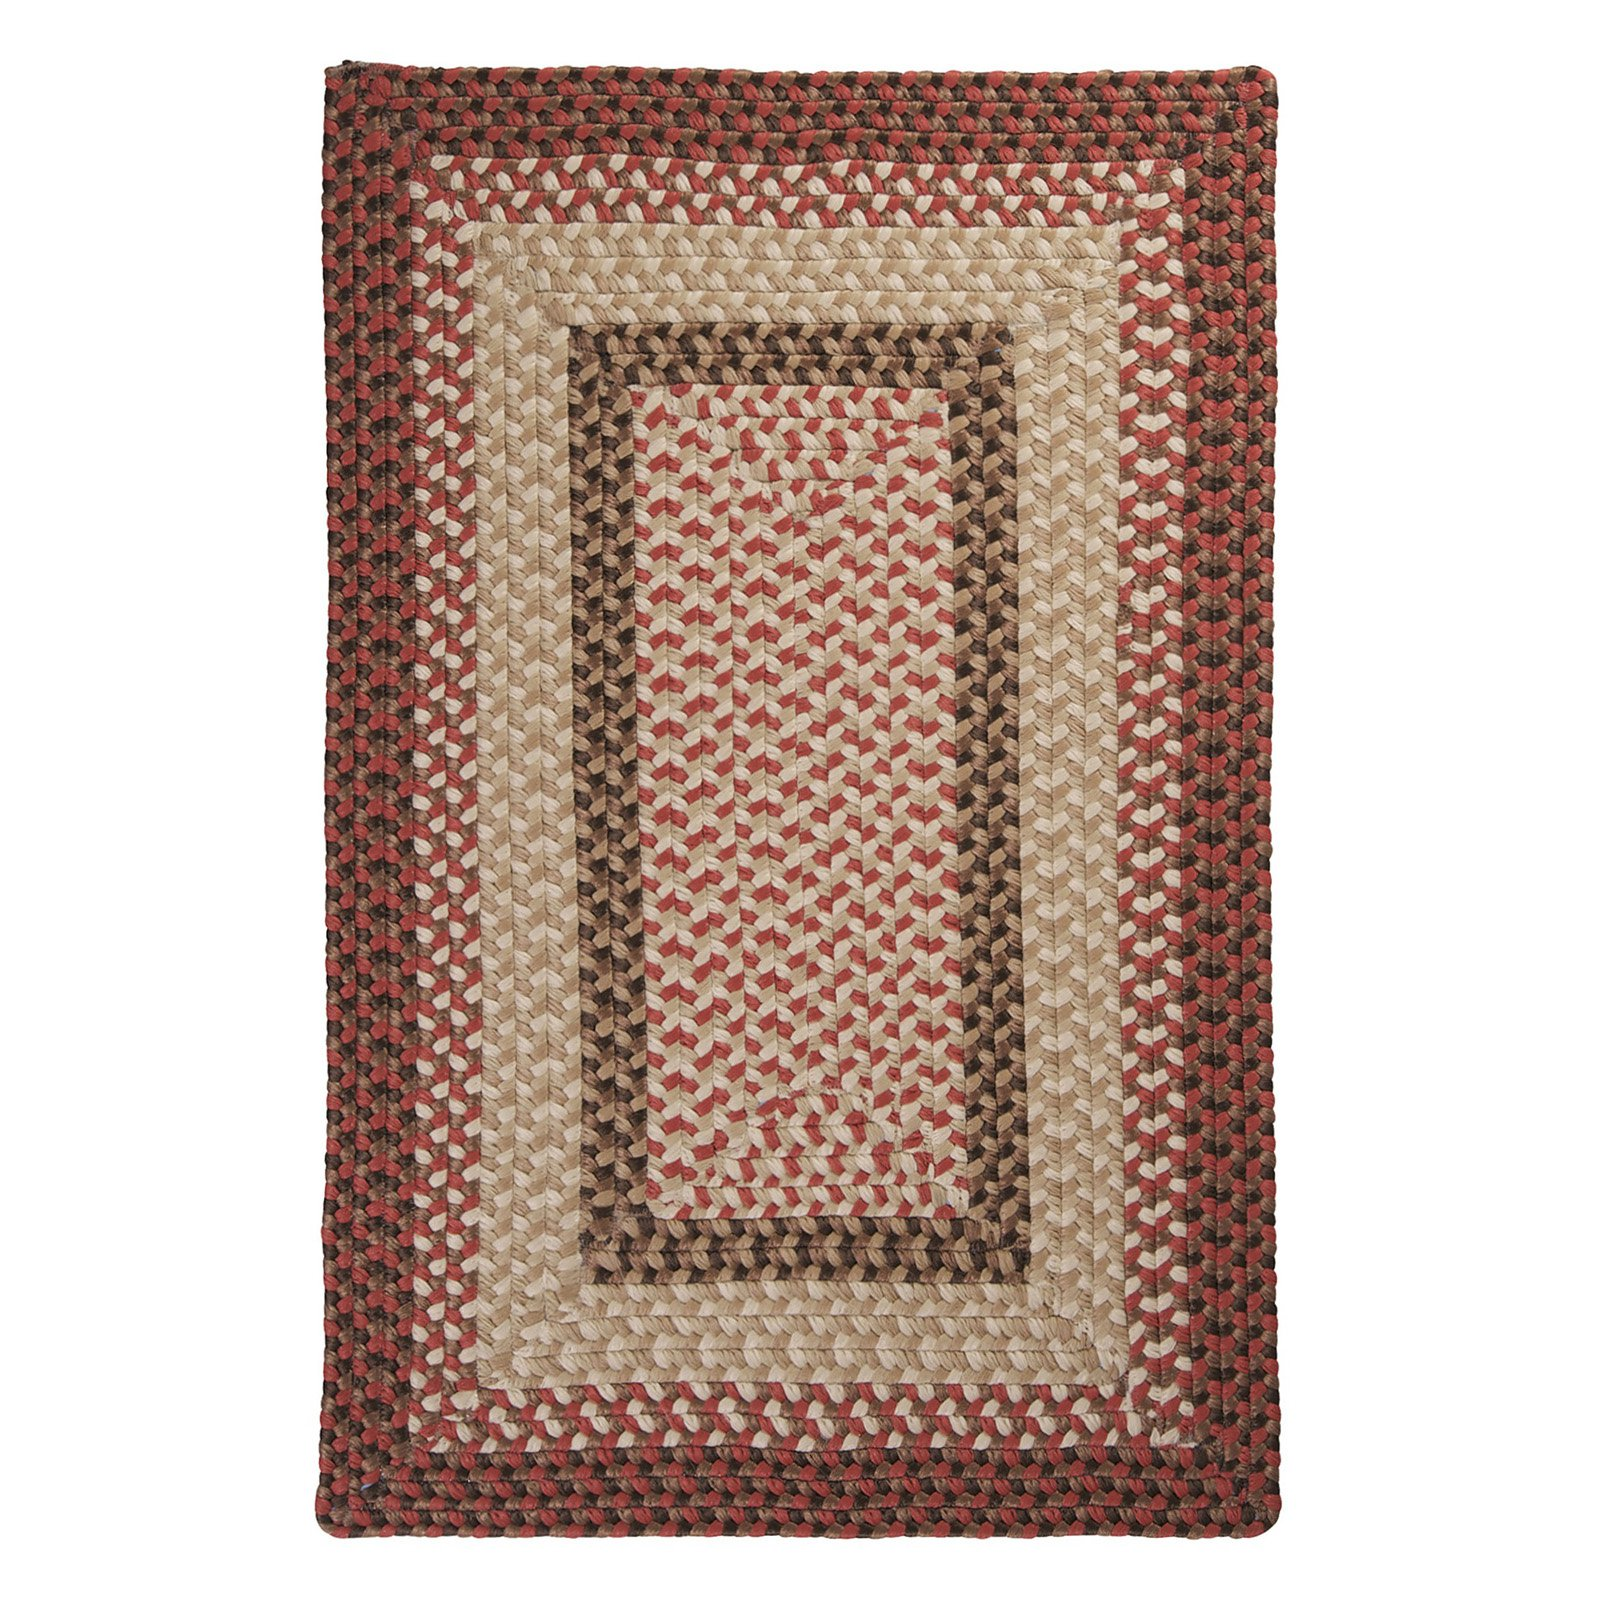 Colonial Mills TB79R Tiburon Indoor/Outdoor Braided Rug - Rusted Rose - 36L x 24W x 0.5H in.